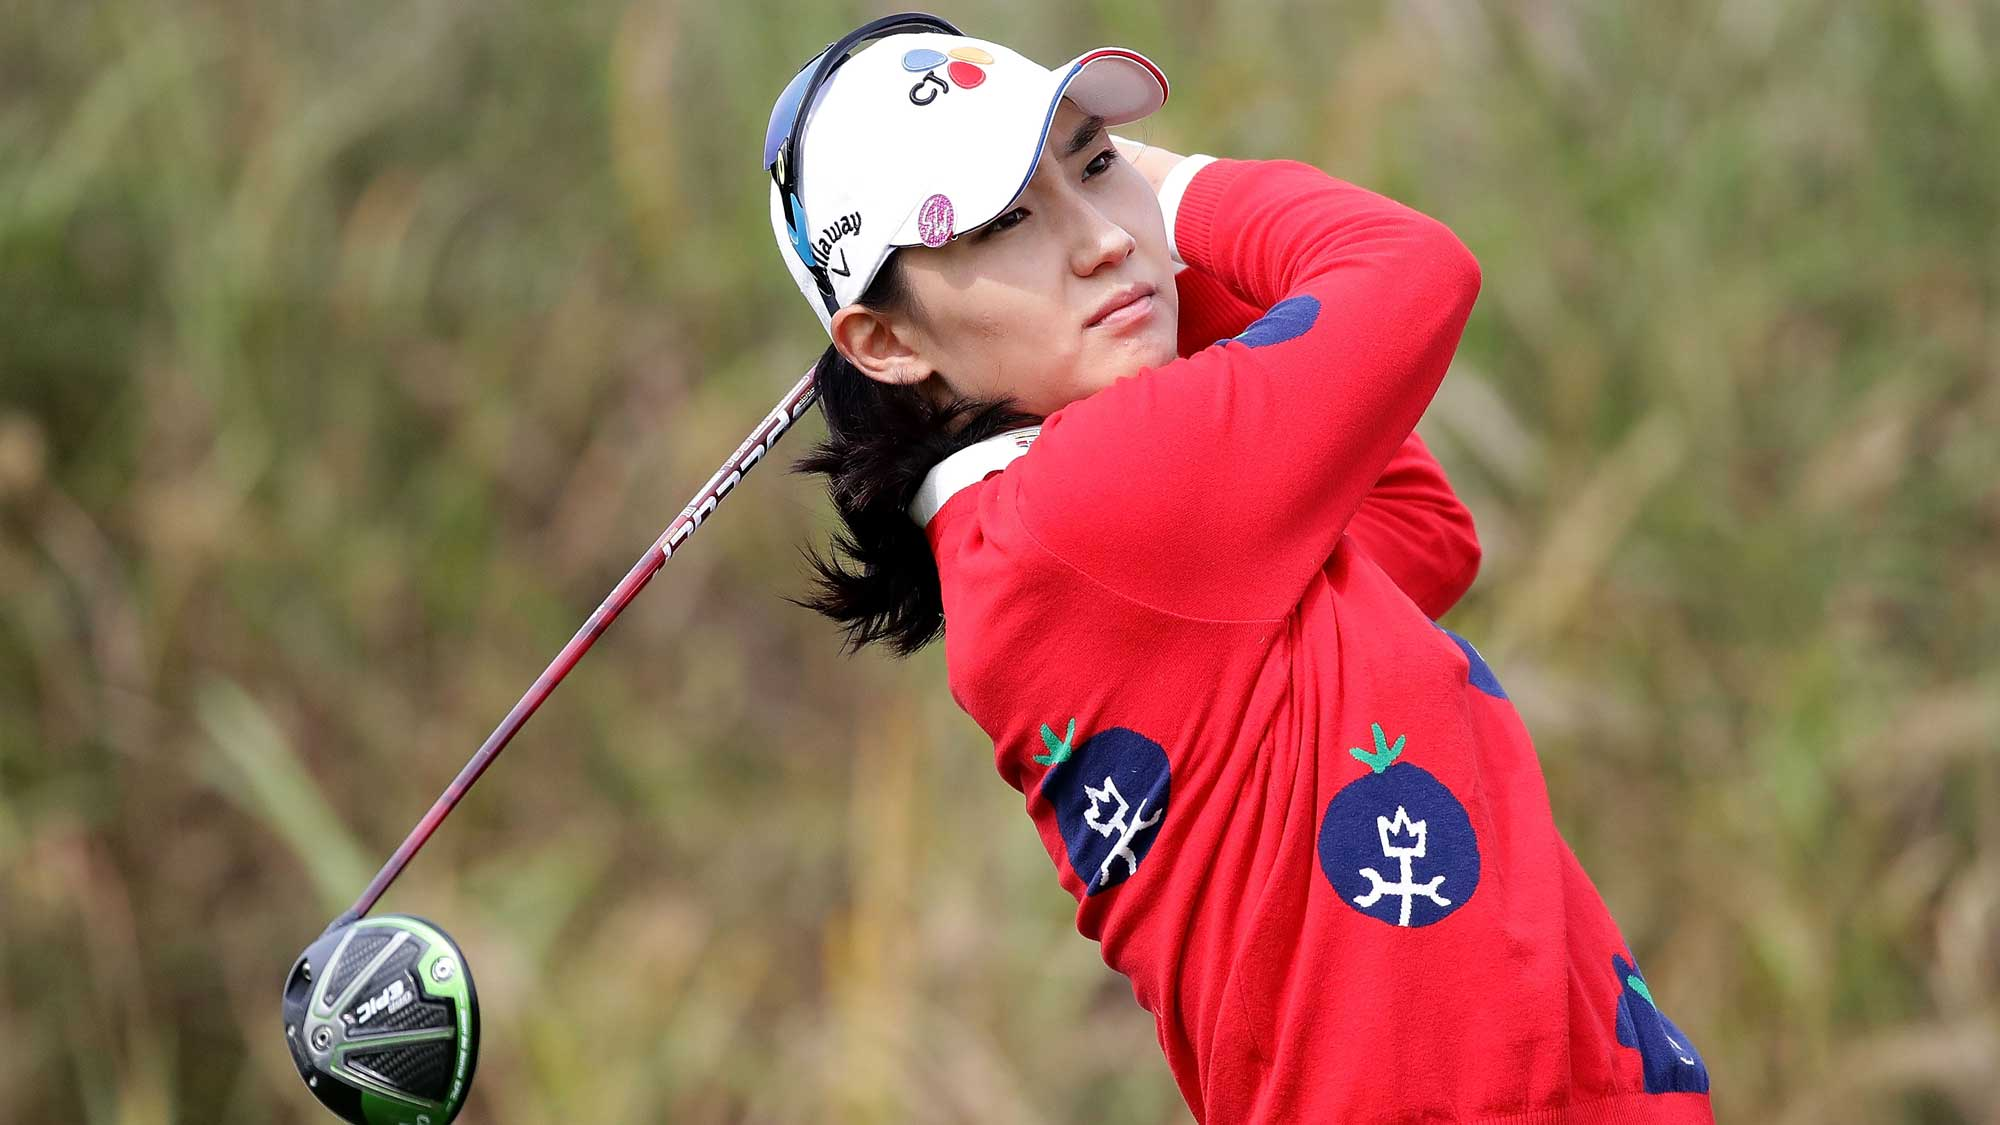 Min-Sun Kim of South Korea plays a tee shot on the 7th hole during the first round of the LPGA KEB Hana Bank Championship